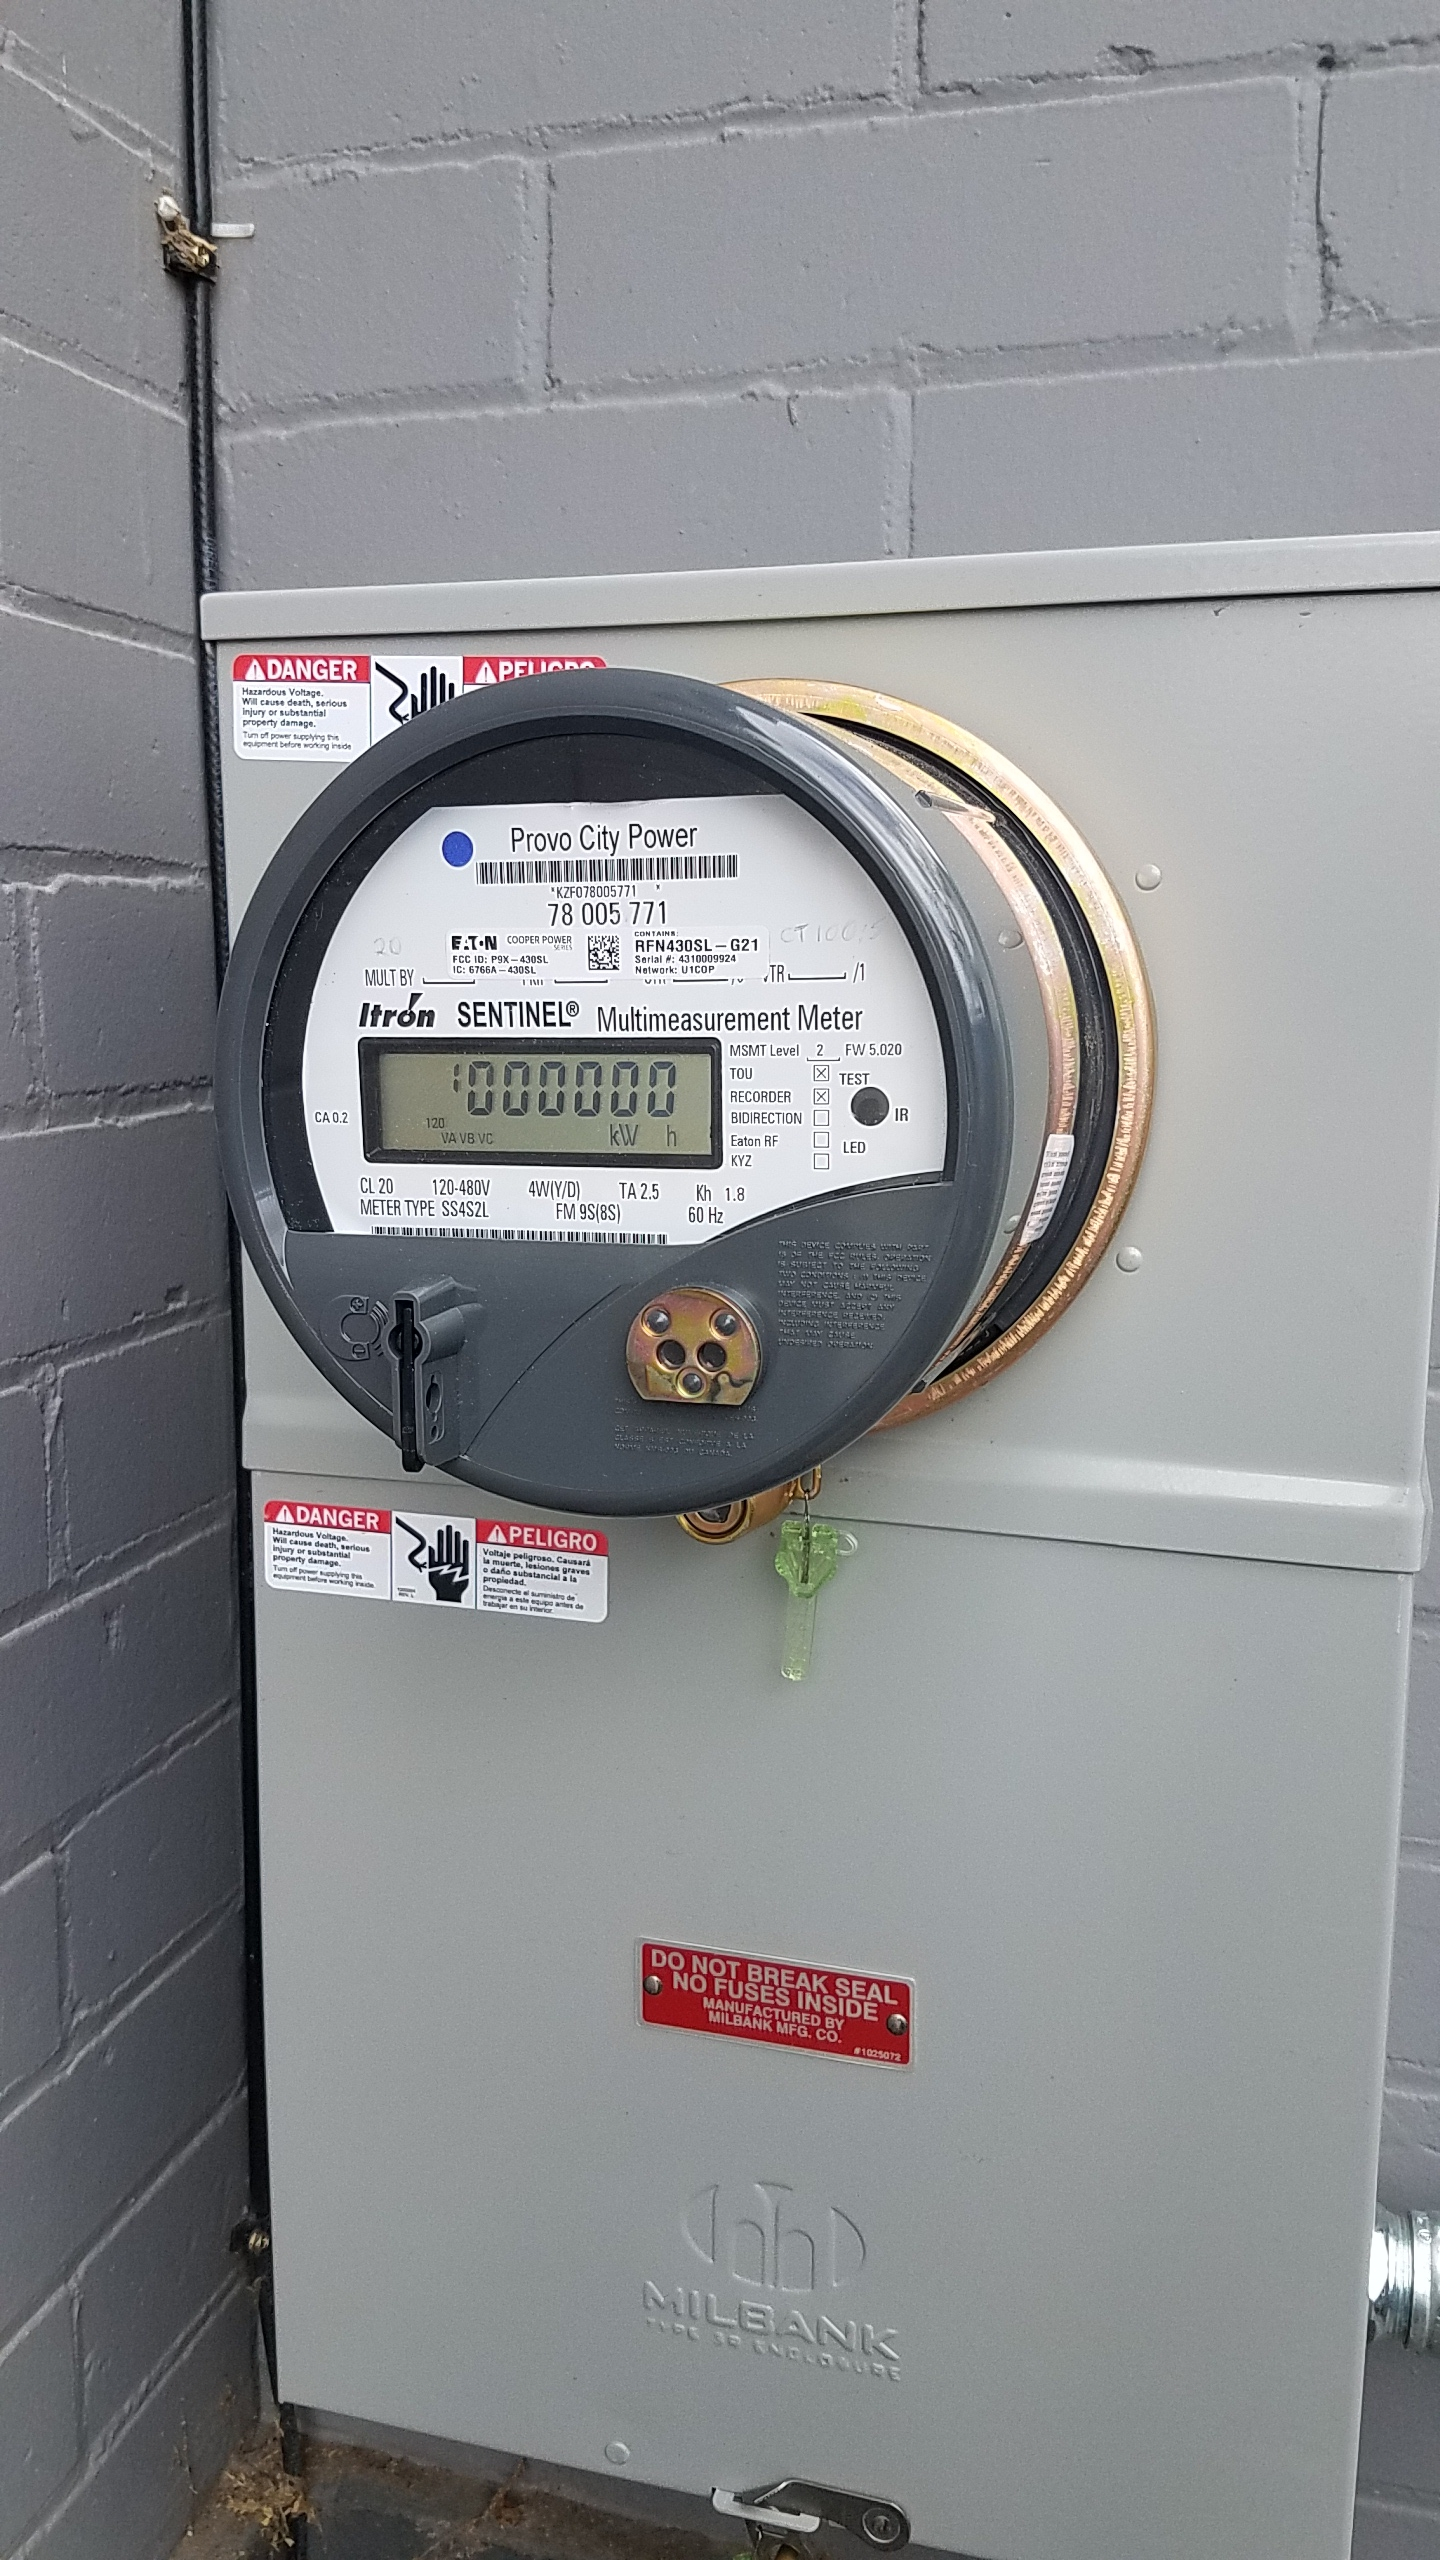 Provo City Power came out and got the new power service up and running. We are still on temporary power for the time being, but we have power into the new space awaiting the electricians finishing off the rough electrical.